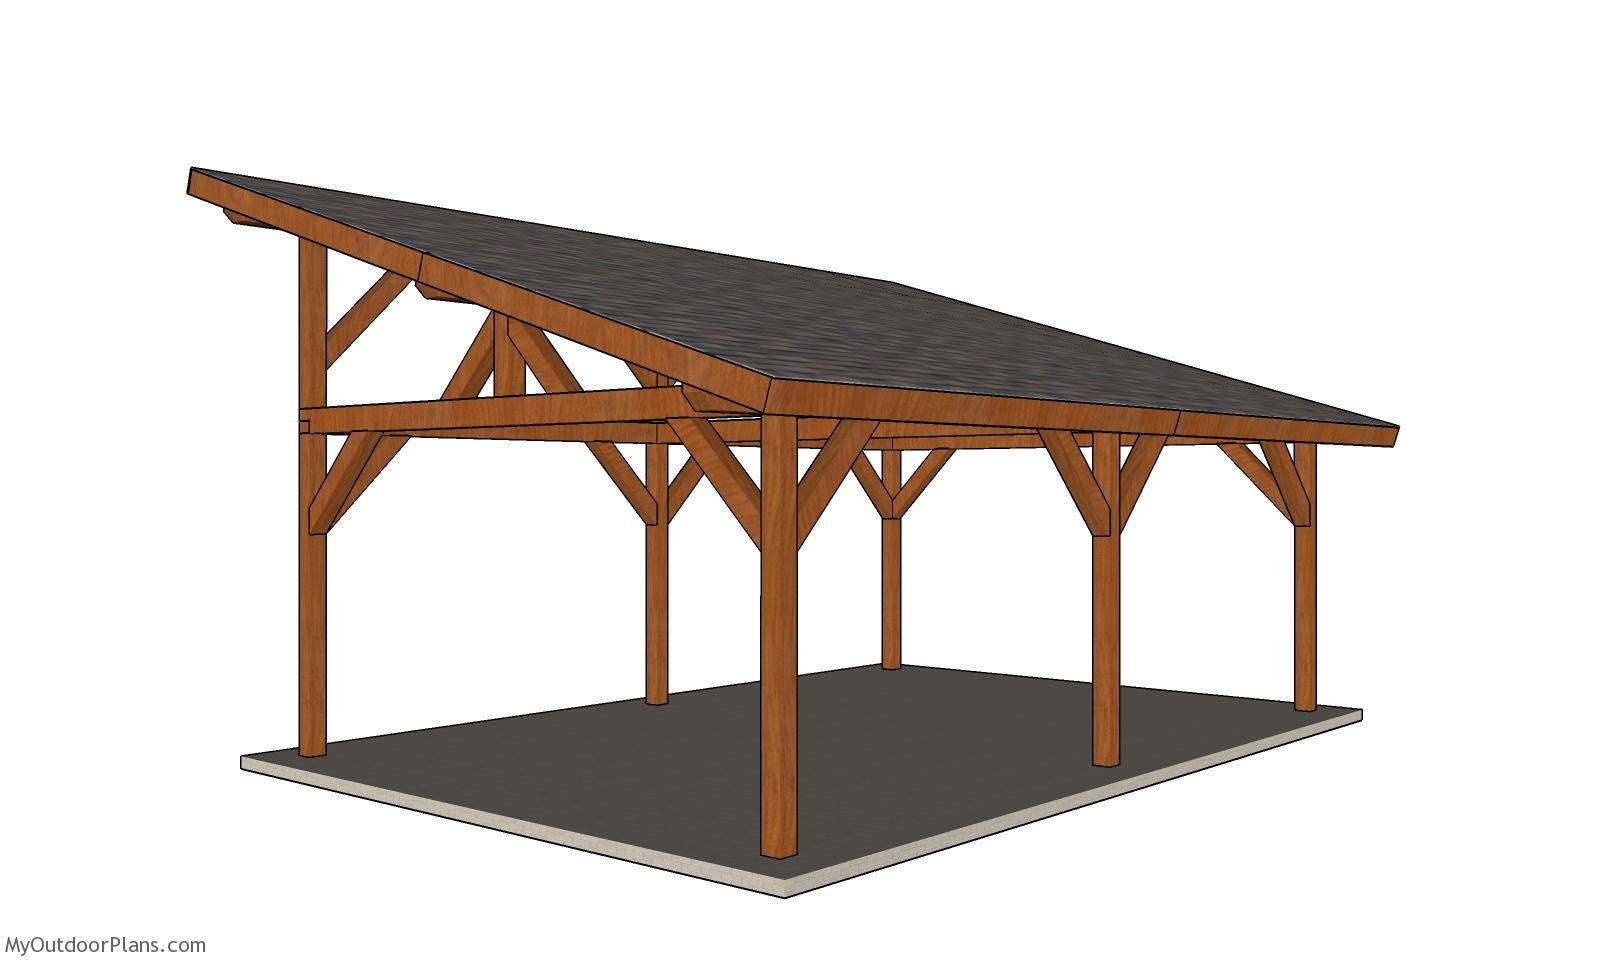 16x24 Pavilion with Lean to Roof Plans